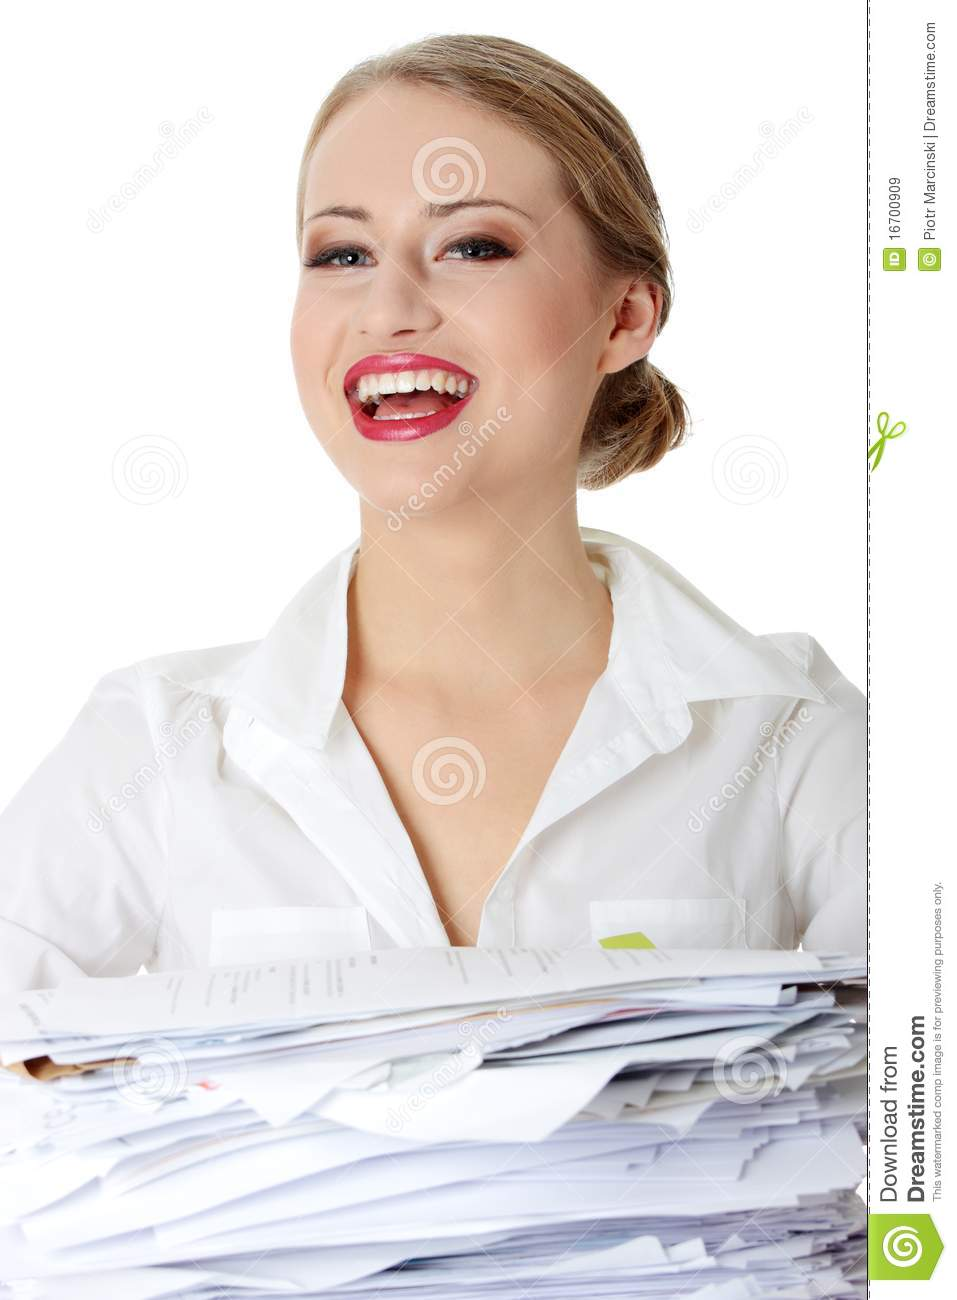 Overworked Businesswoman Stock Image Image Of Overworked